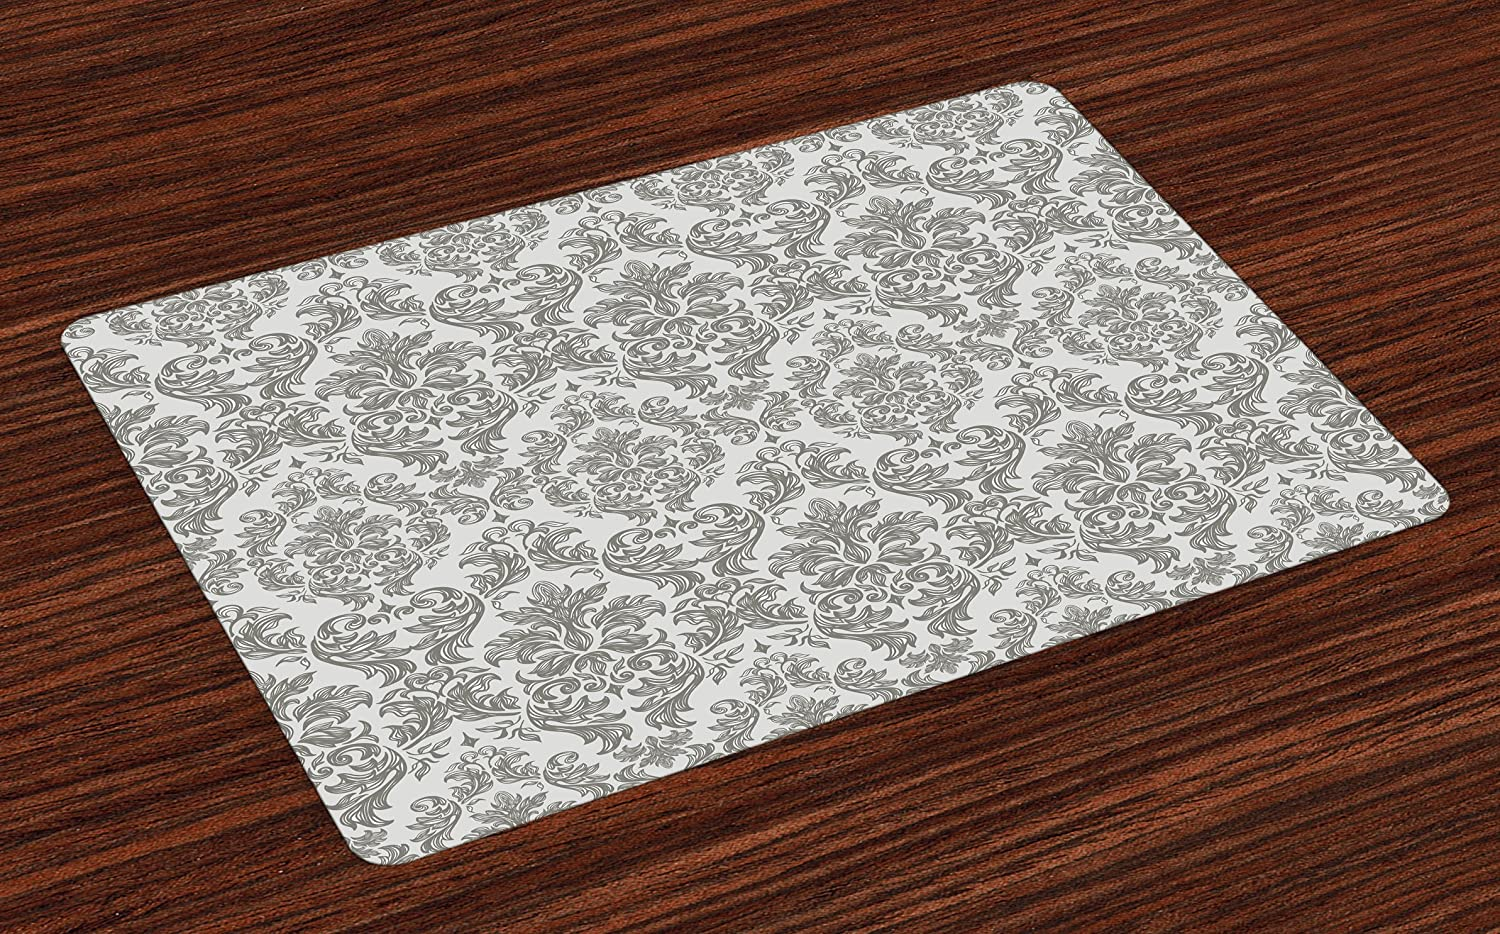 Lunarable Damask Place Mats Set of 4, Baroque Style Leaf Blossoming Pattern Flowery Artful Design Curves Ornamental Artwork, Washable Fabric Placemats for Dining Room Kitchen Table Decoration, Gray